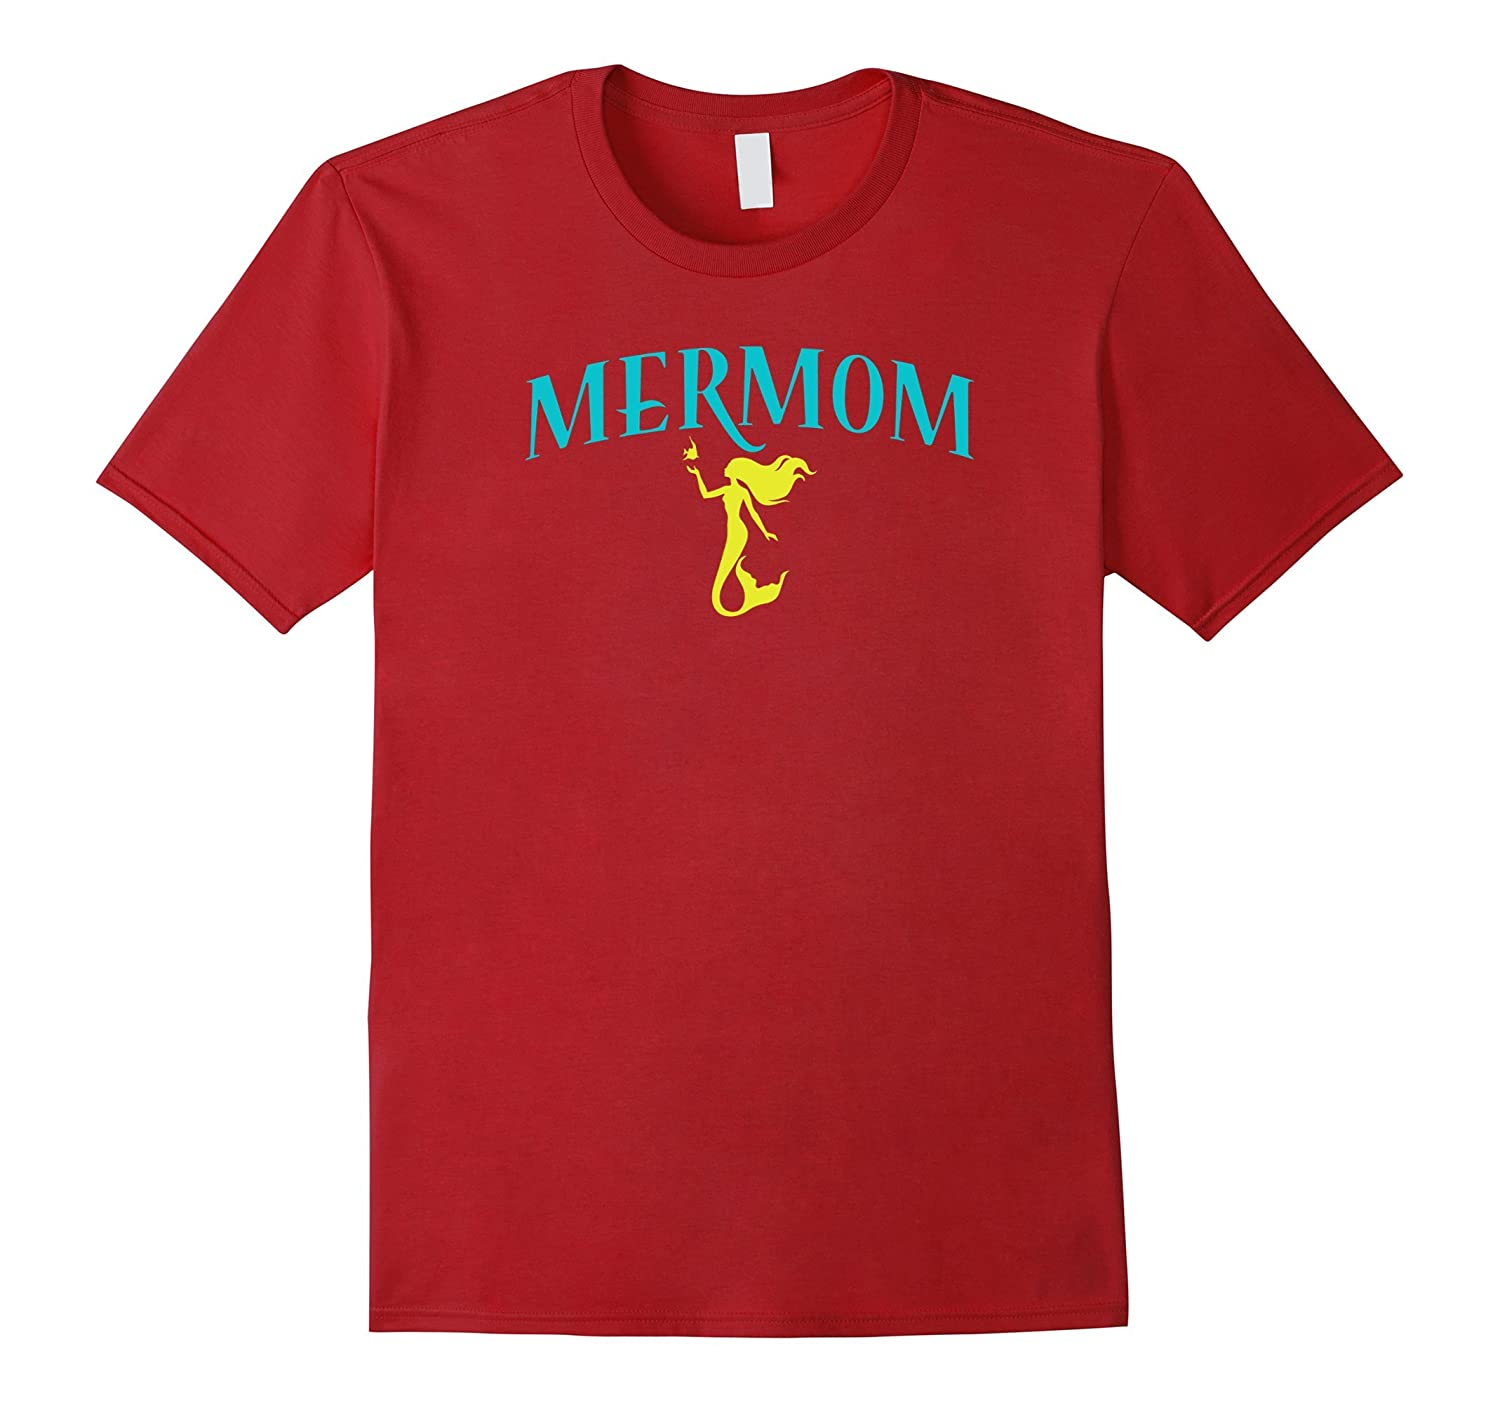 Mother's Day Shirt – Mermom Shirt, Mother of a Mermaid Shirt